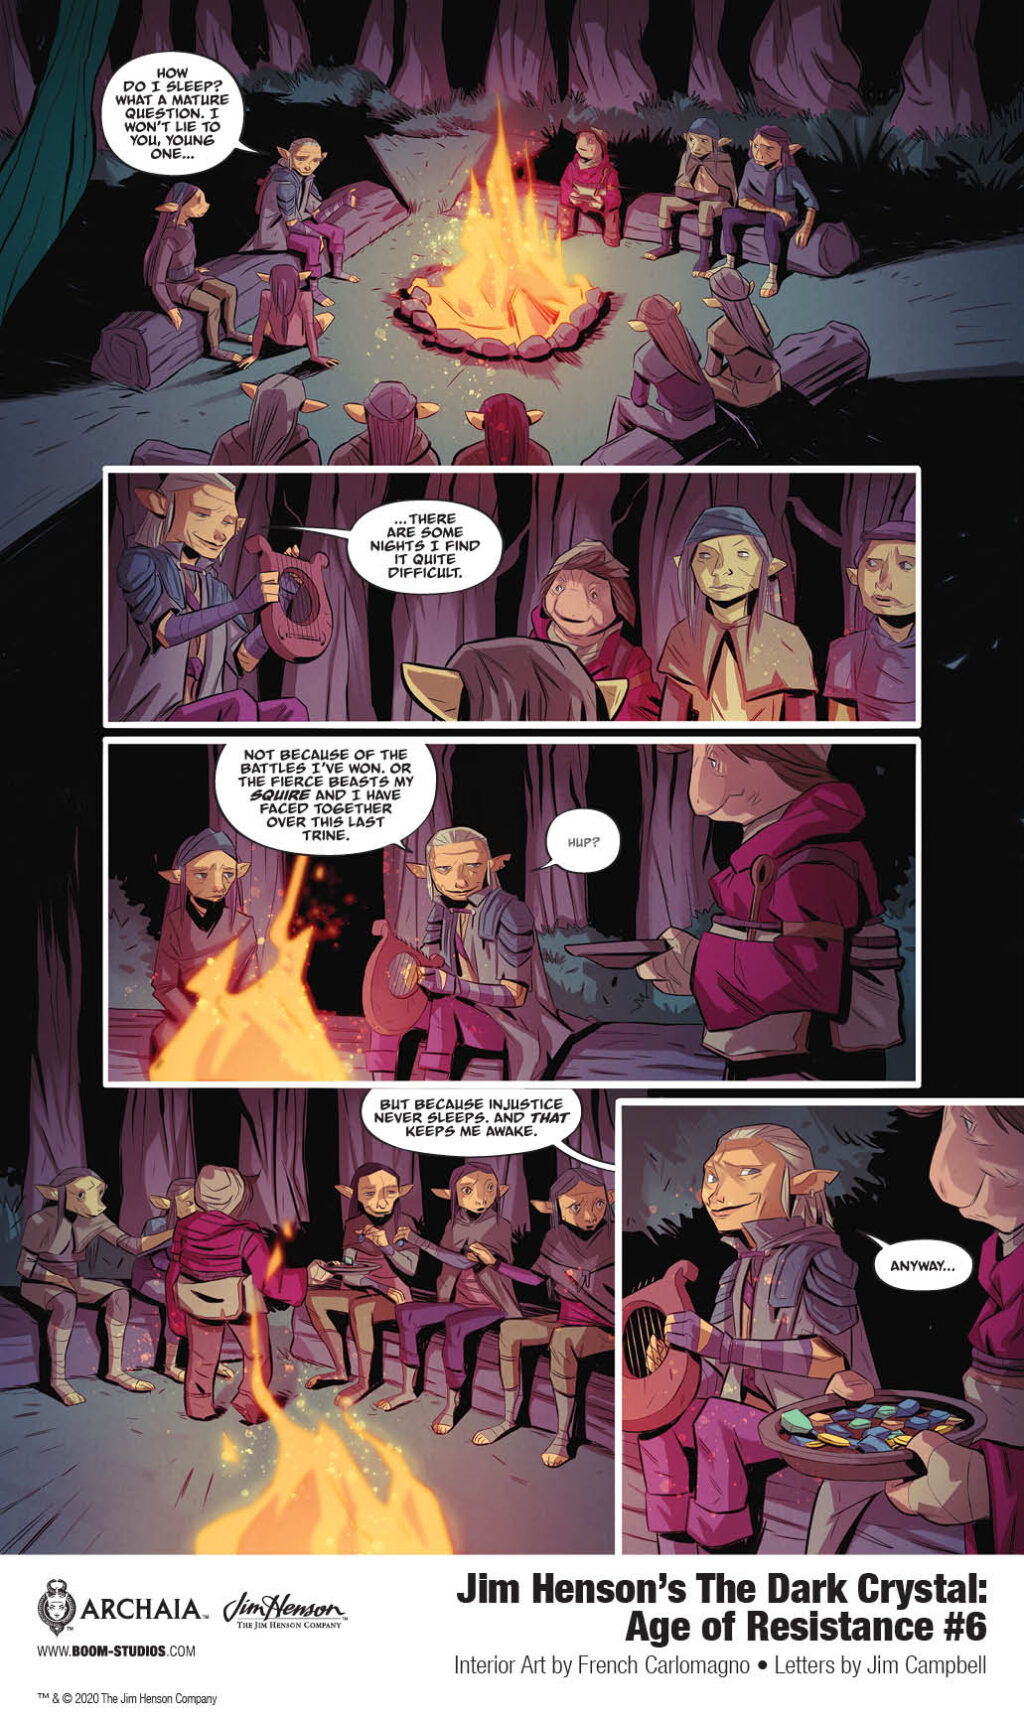 unnamed 45 1024x1722 - First Look at JIM HENSON'S THE DARK CRYSTAL: AGE OF RESISTANCE #6